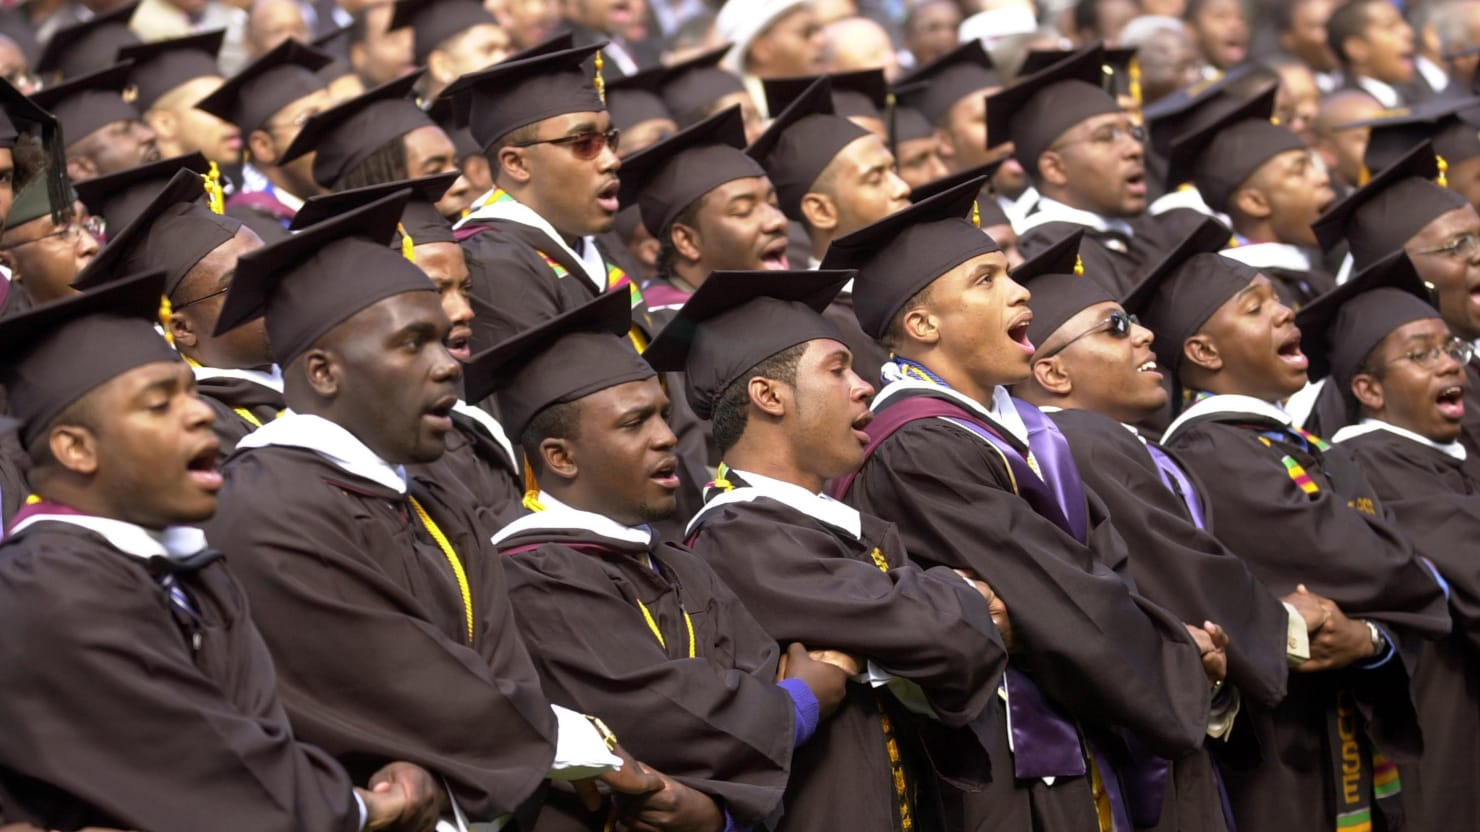 Morehouse College Commencement Speaker Says He Will Pay-Off Entire Graduating Class' Student Debt